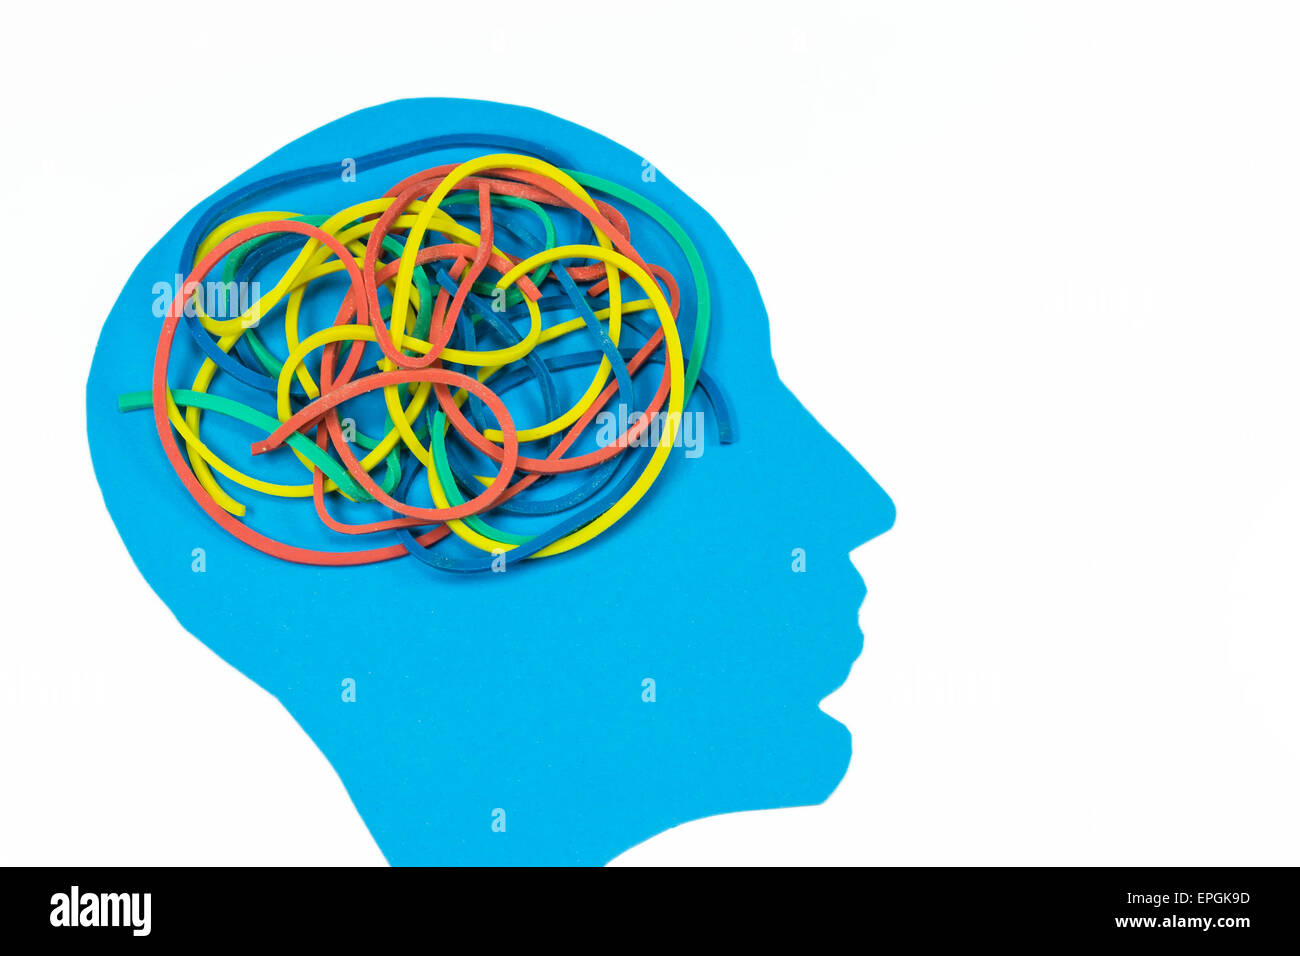 Blue shape of a human head with tangled colored elastic bands , concept for complexity of the human mind - Stock Image